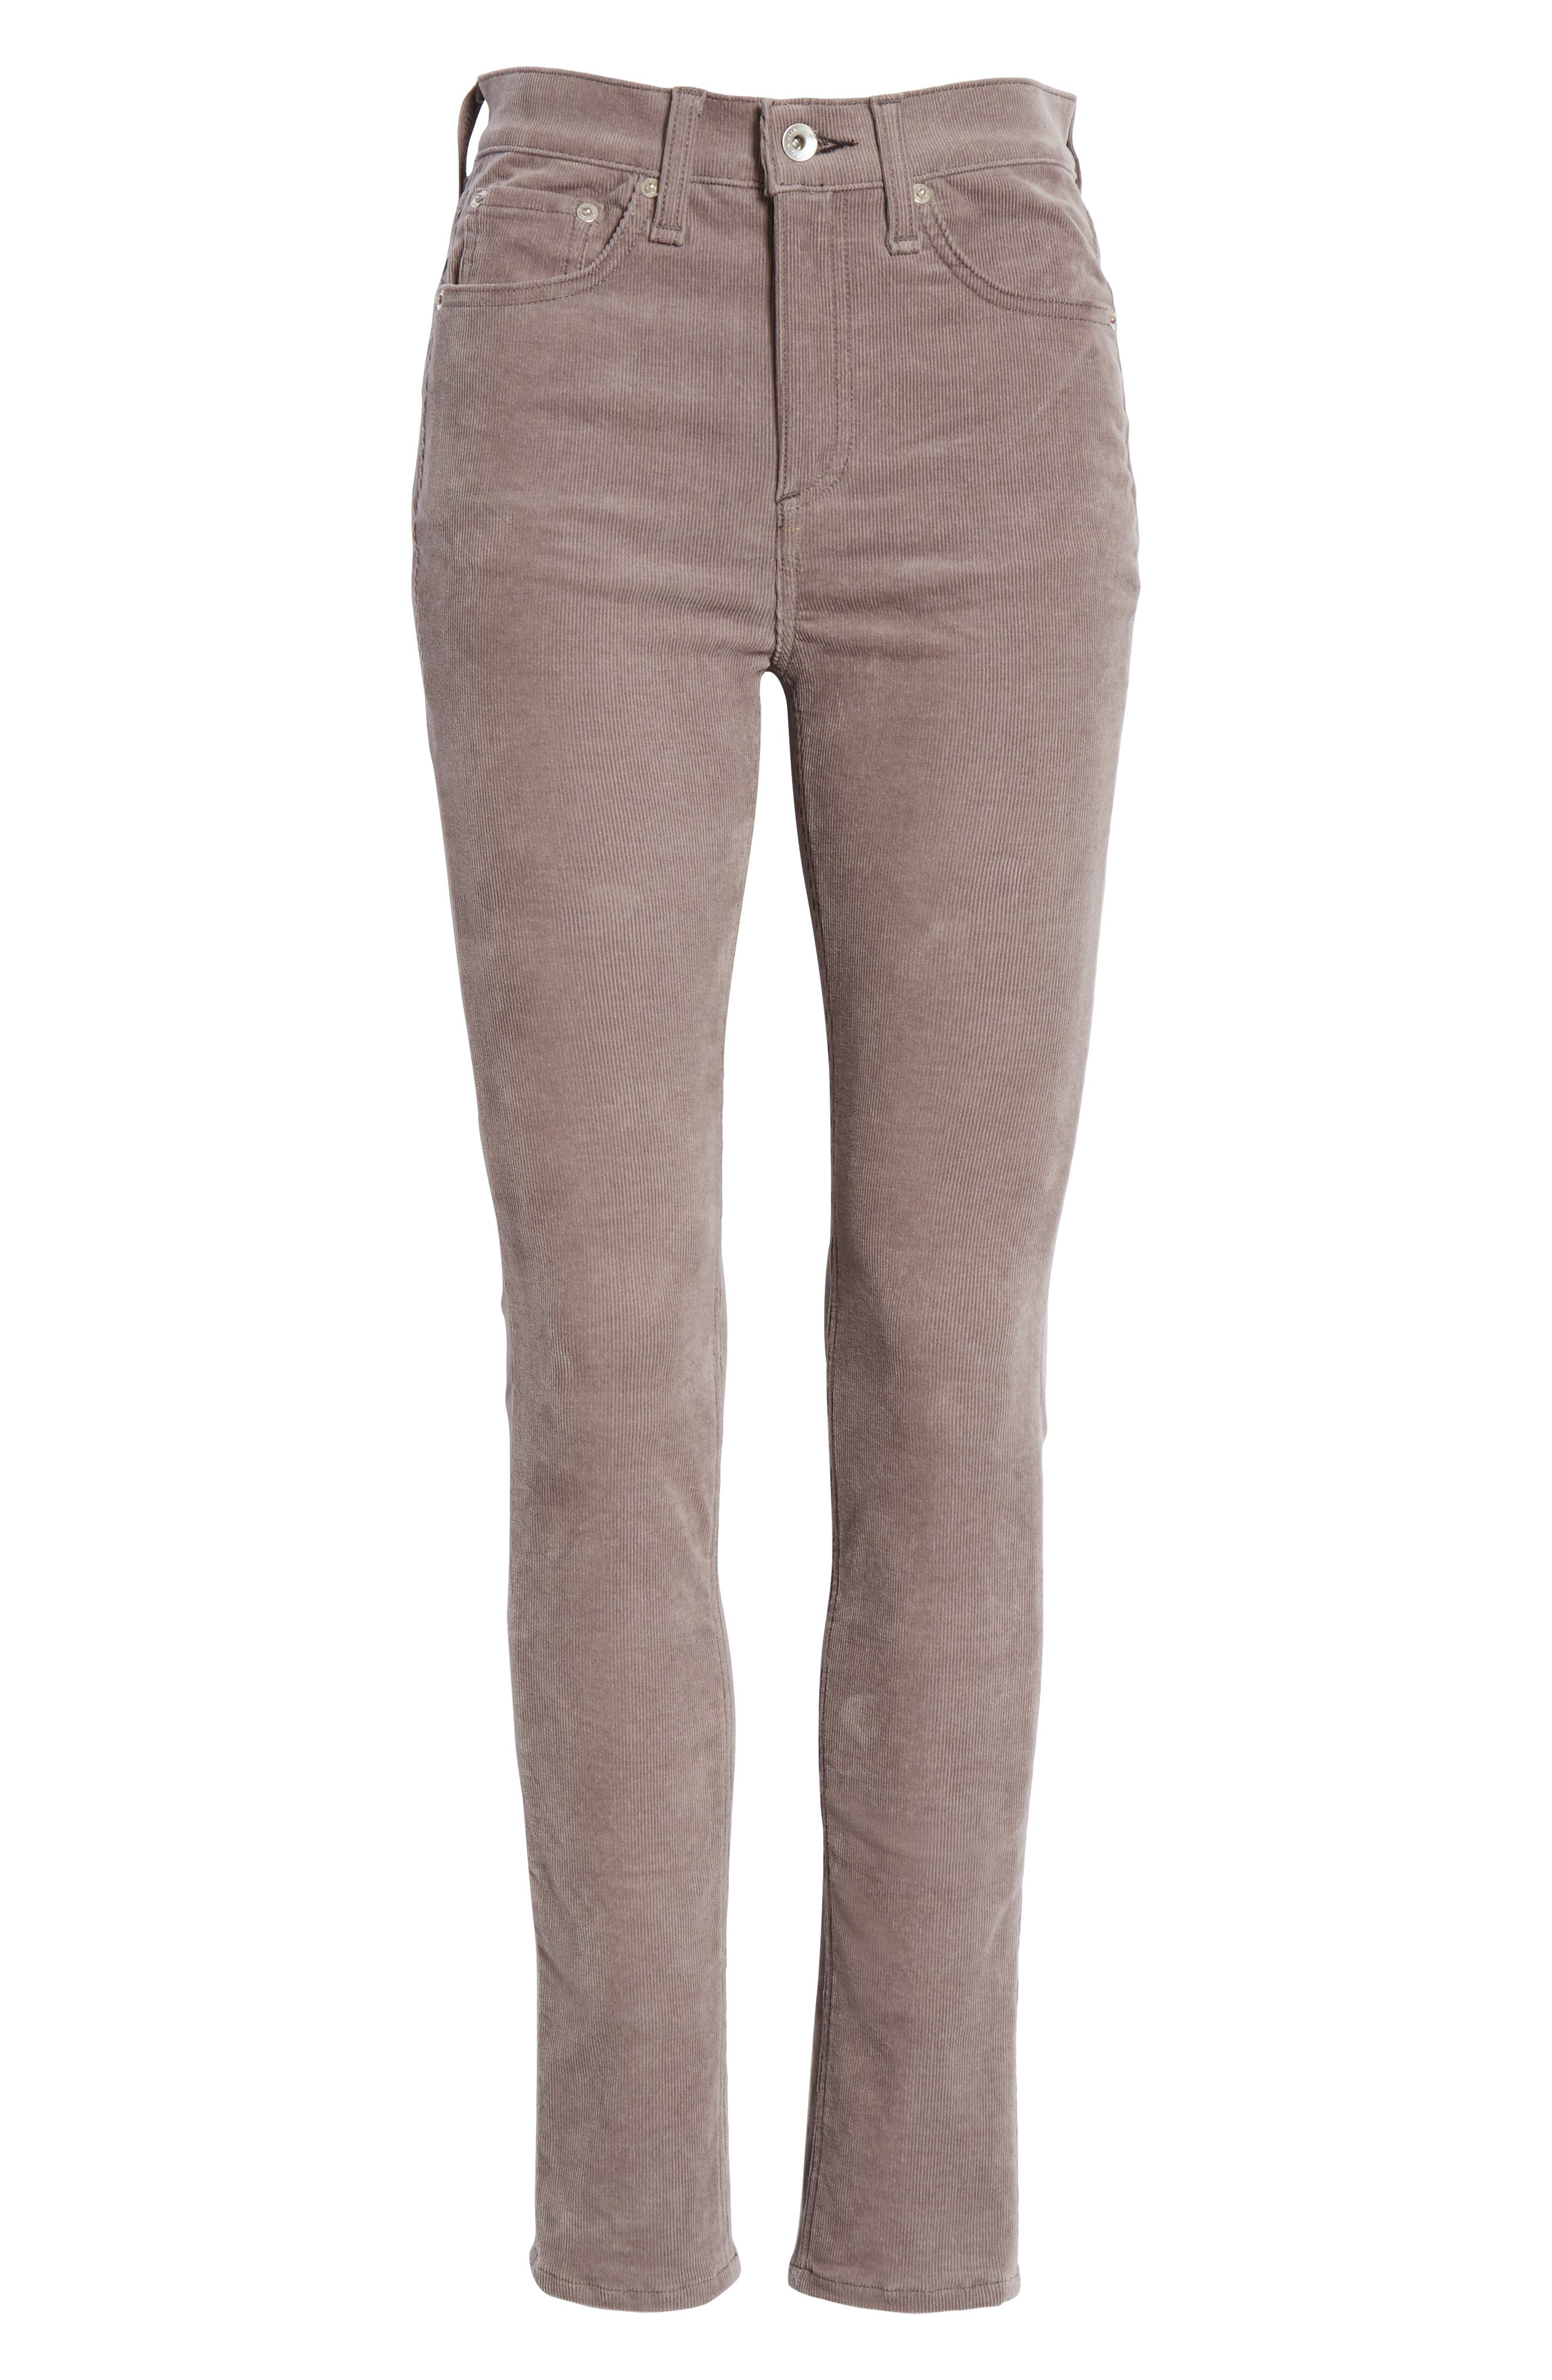 rag & bone High Waist Ankle Skinny Corduroy Pants,                             Alternate thumbnail 7, color,                             021